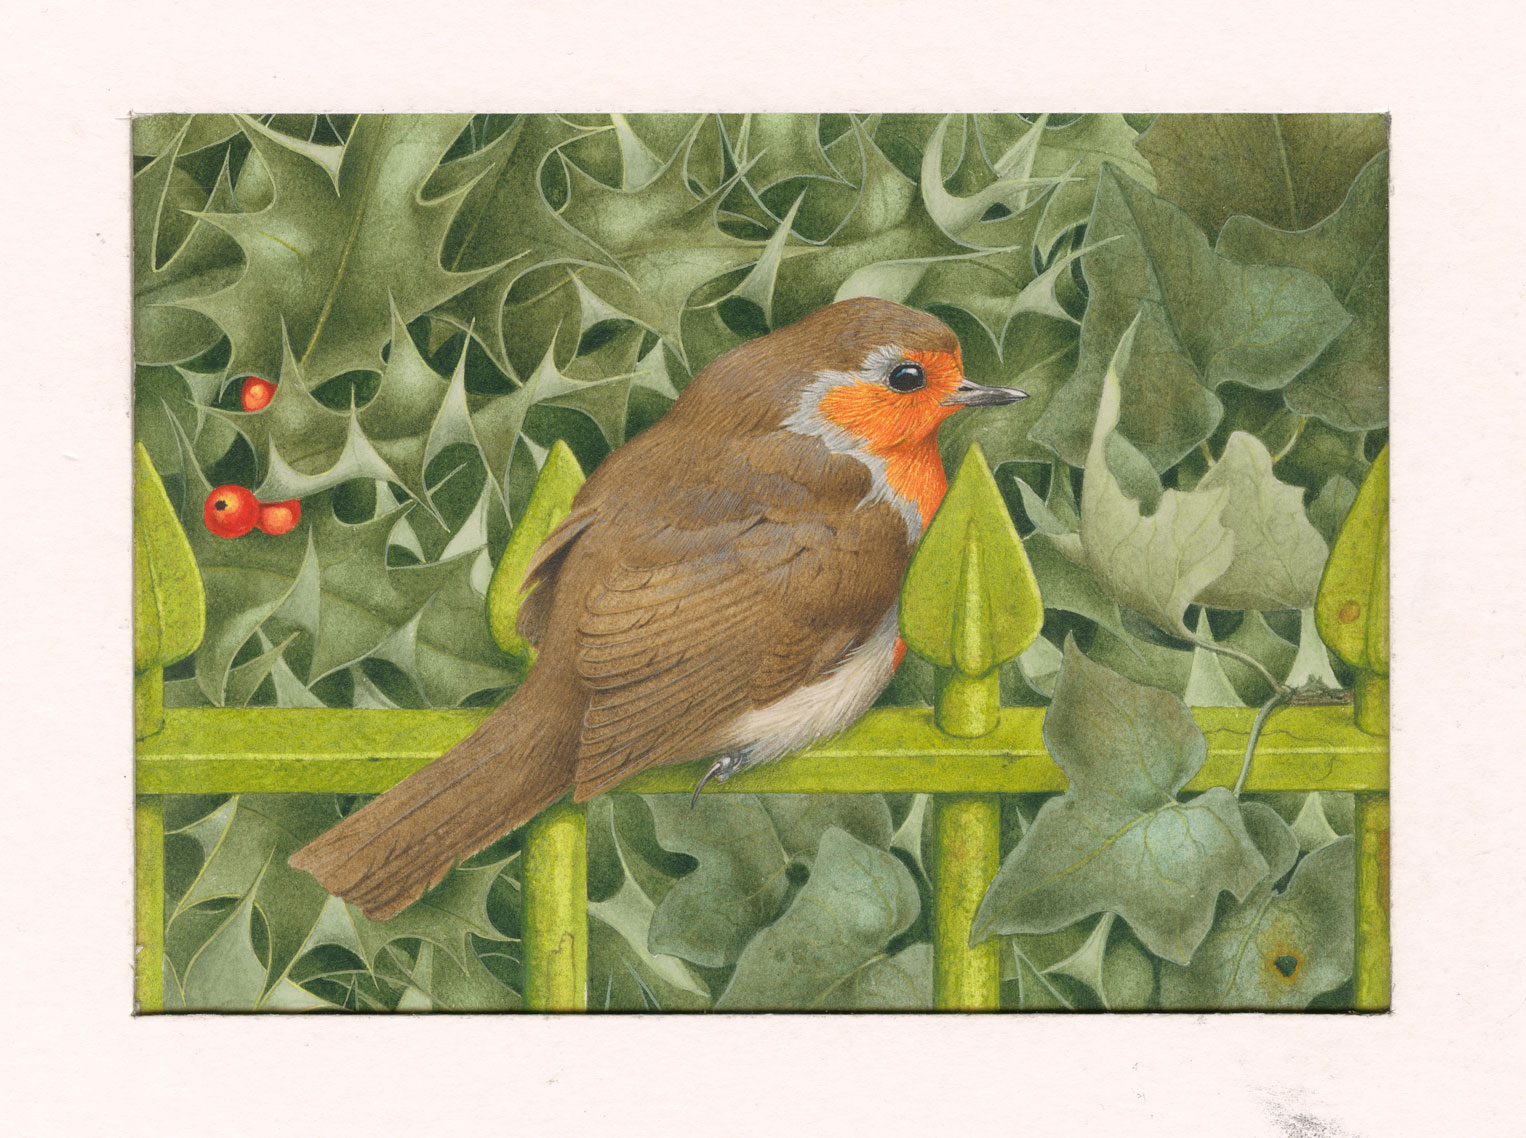 A painting of a robin sat on a fence against a bush of ivy.